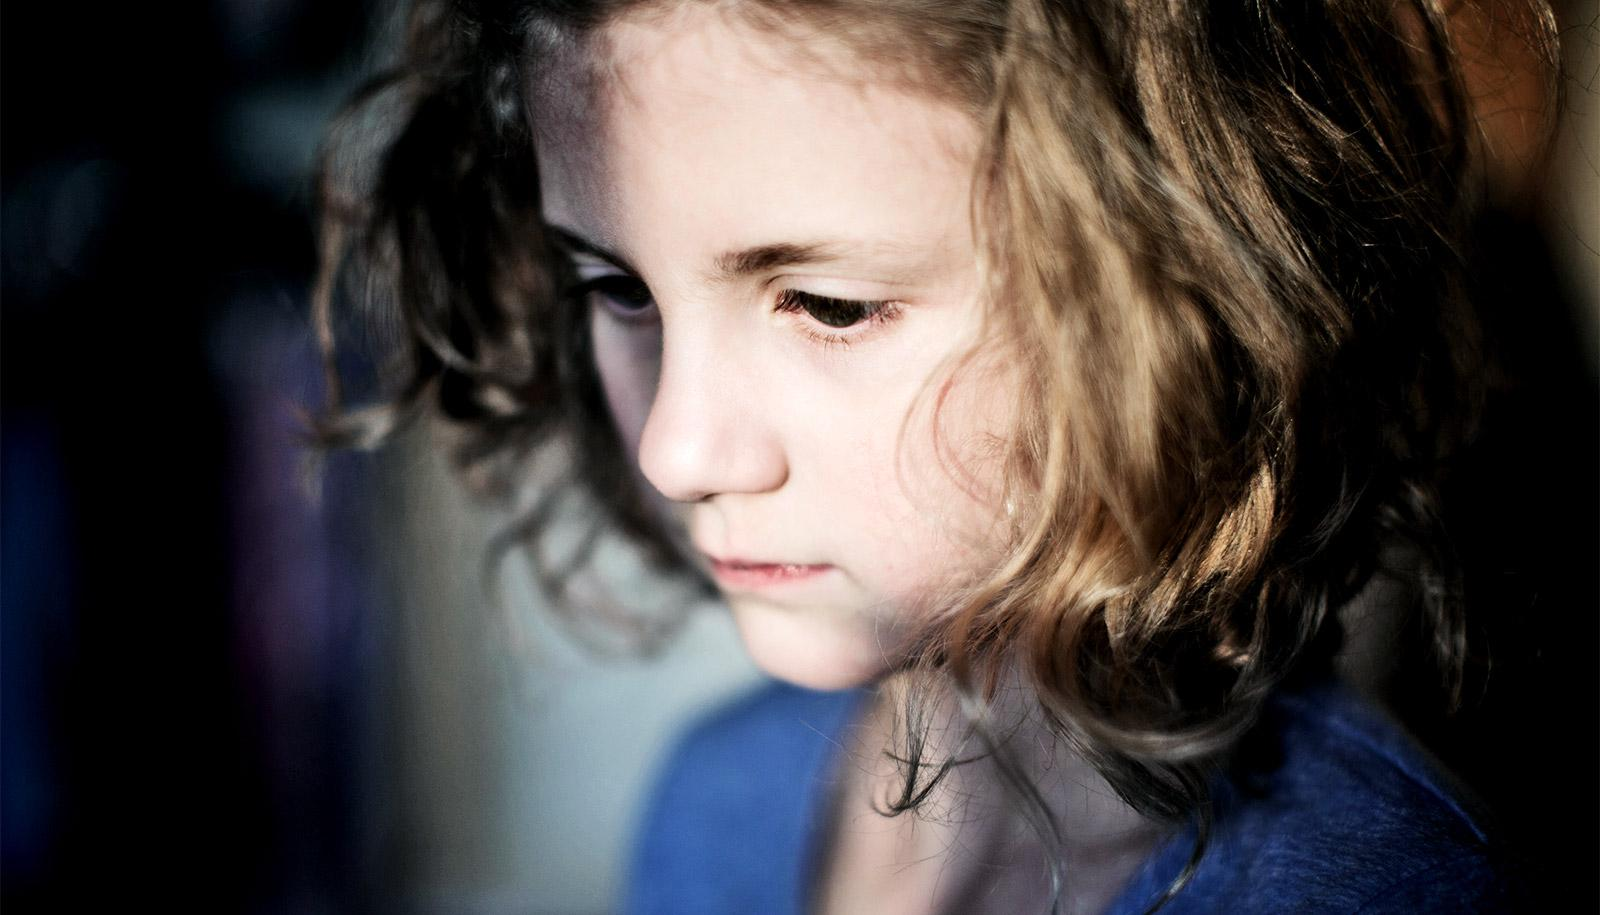 A young girl looks downward in sadness or deep thought with some of her face covered in shadow